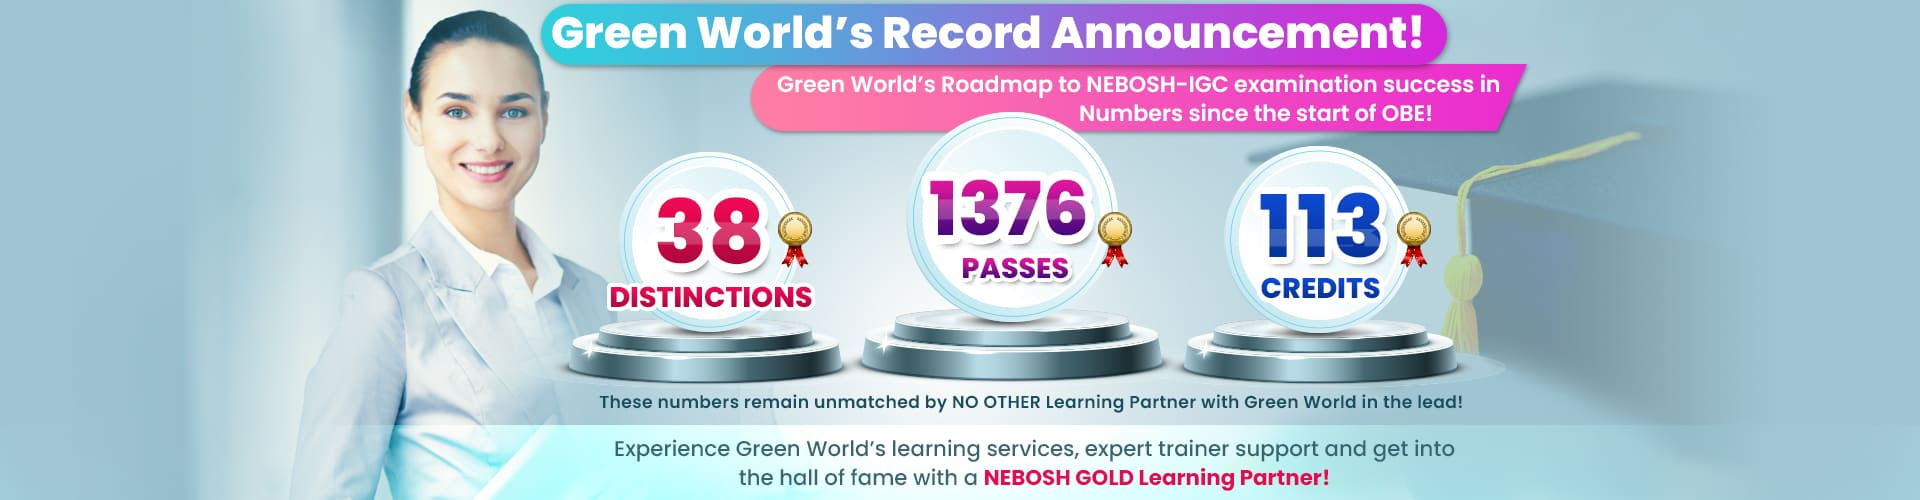 Green-World's-record-announcement_Banner_2021_coin